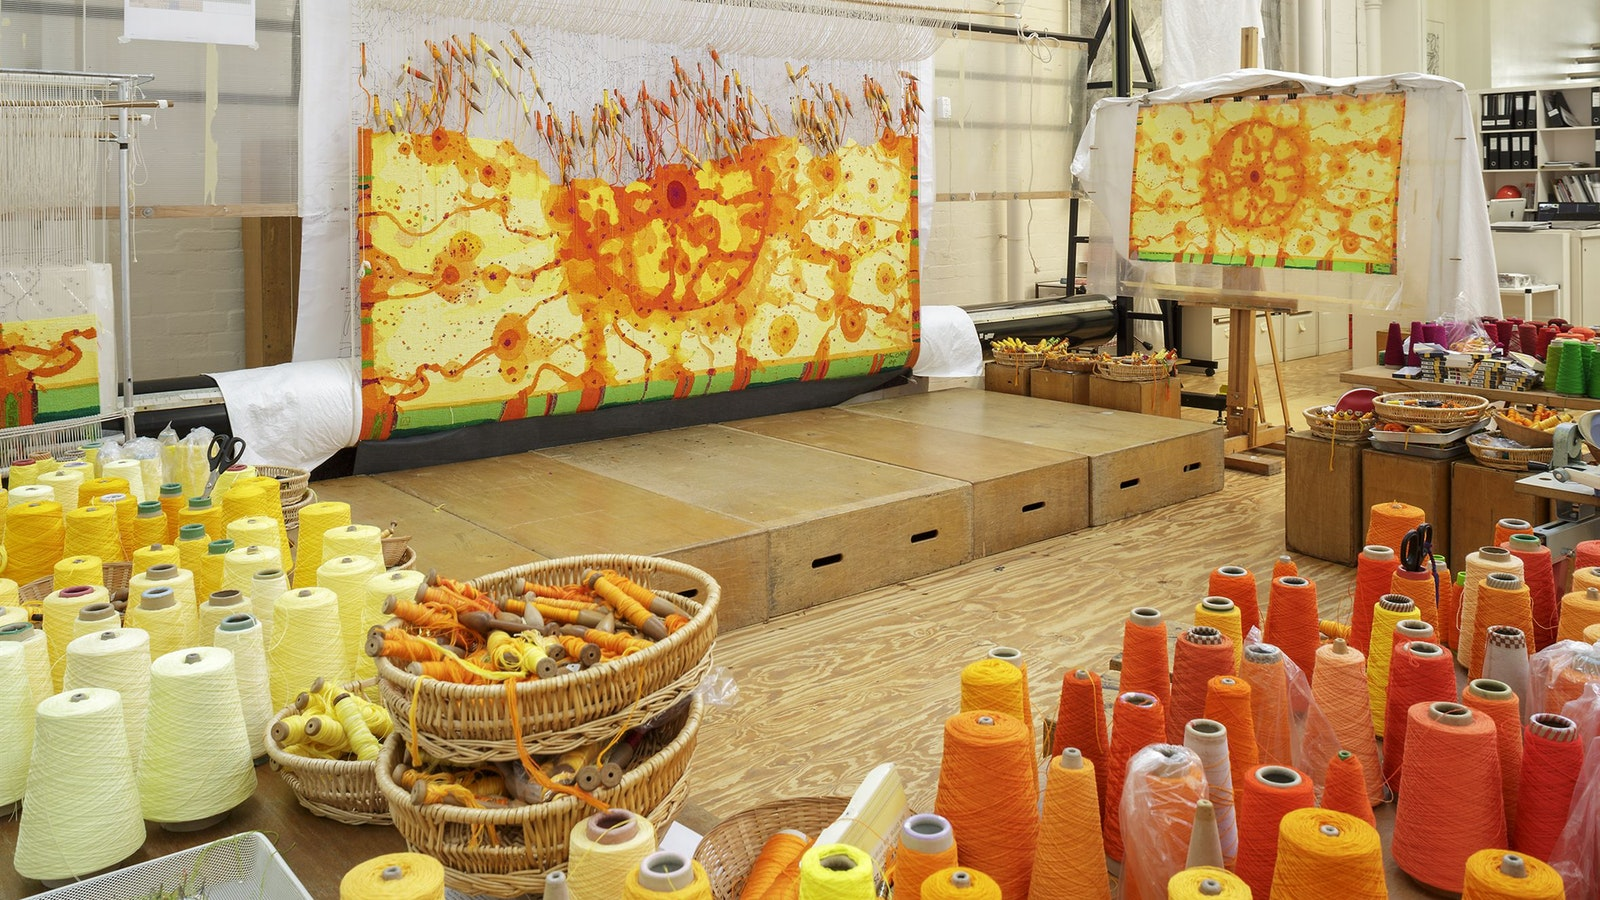 On the Loom:  Sun Over the You Beaut Country, 2014   Artist:  John Olsen AO OBE